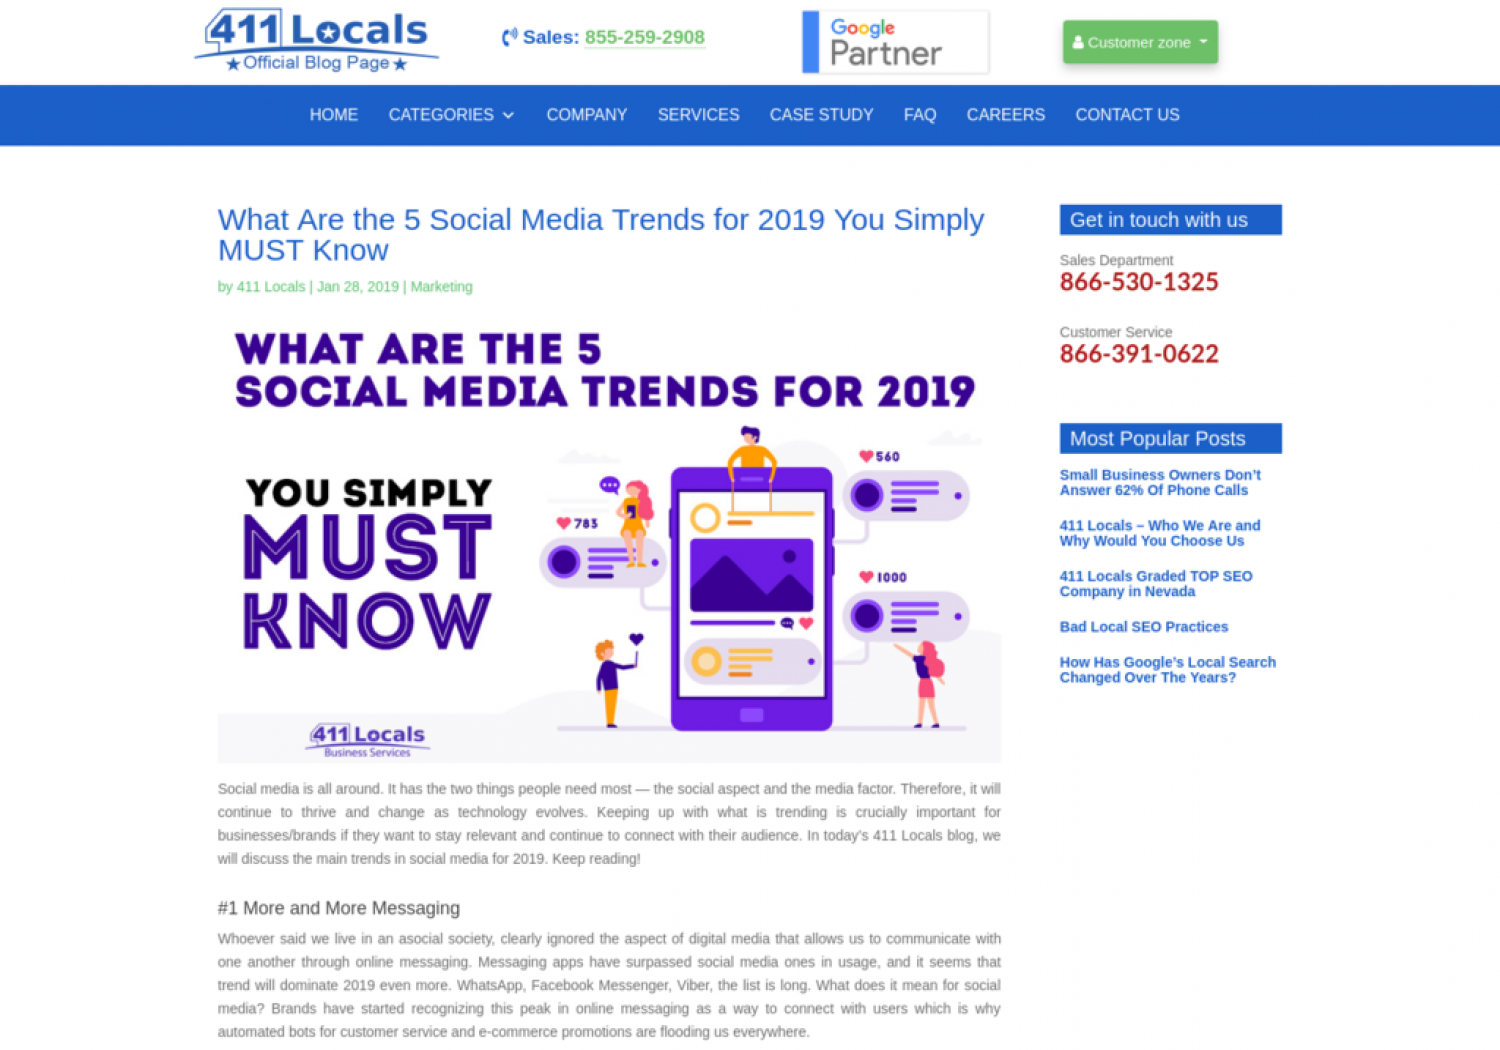 What Are the 5 Social Media Trends for 2019 You Simply MUST Know Infographic